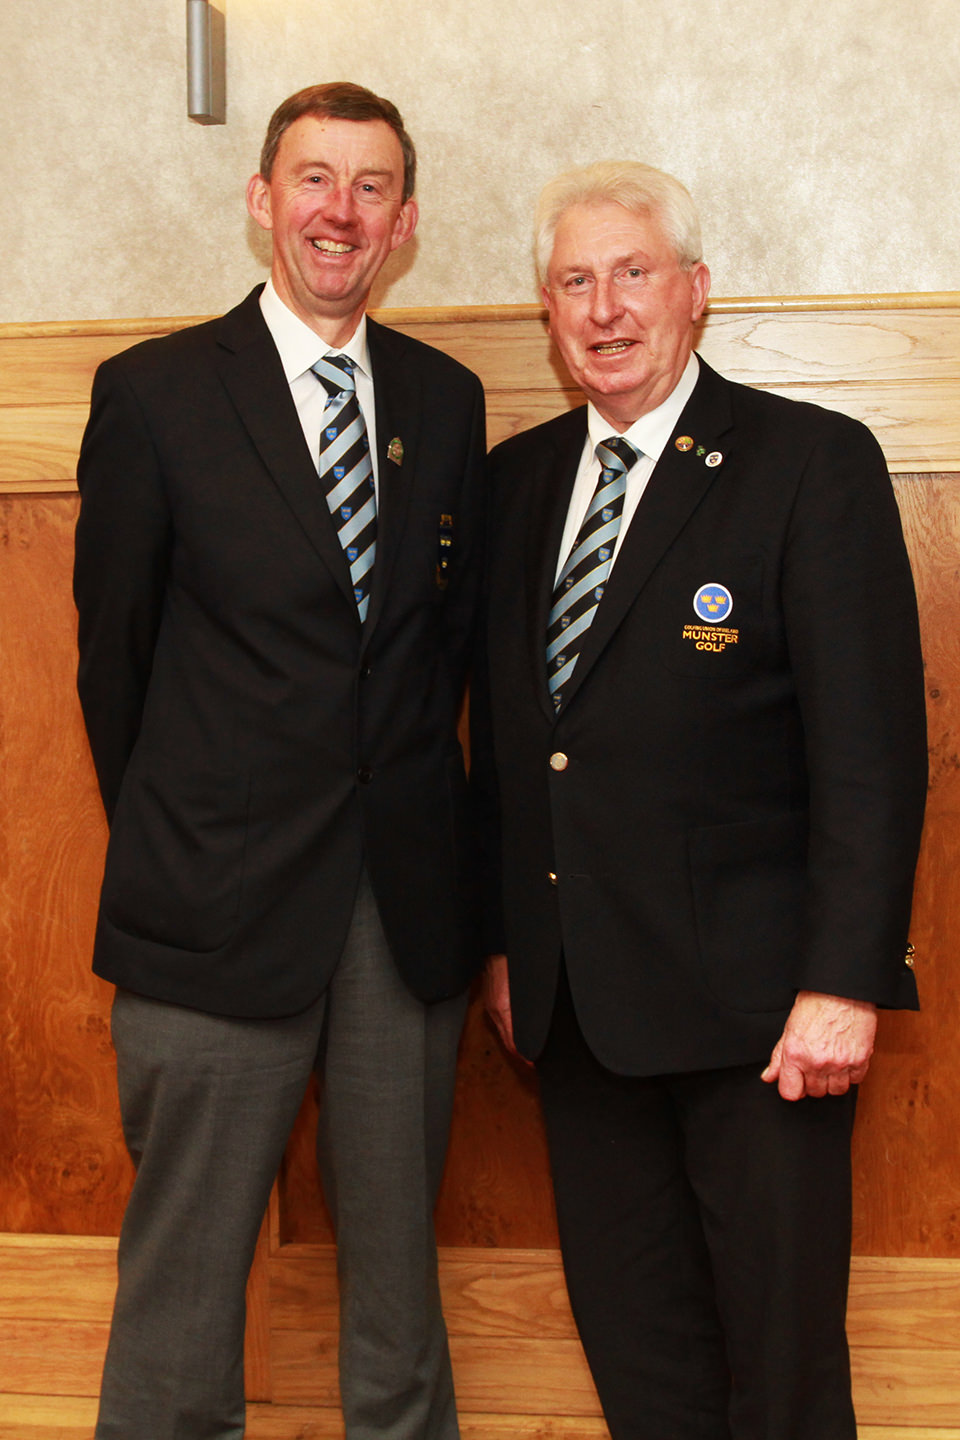 Newly elected Chairman of Munster Golf Jim Long (Monkstown) pictured with outgoing Chairman John Moloughney. at the Munster Golf Annual Delegates Meeting, Tuesday 29th Nov 2016, Hibernian Hotel Mallow. Picture: Niall O'Shea